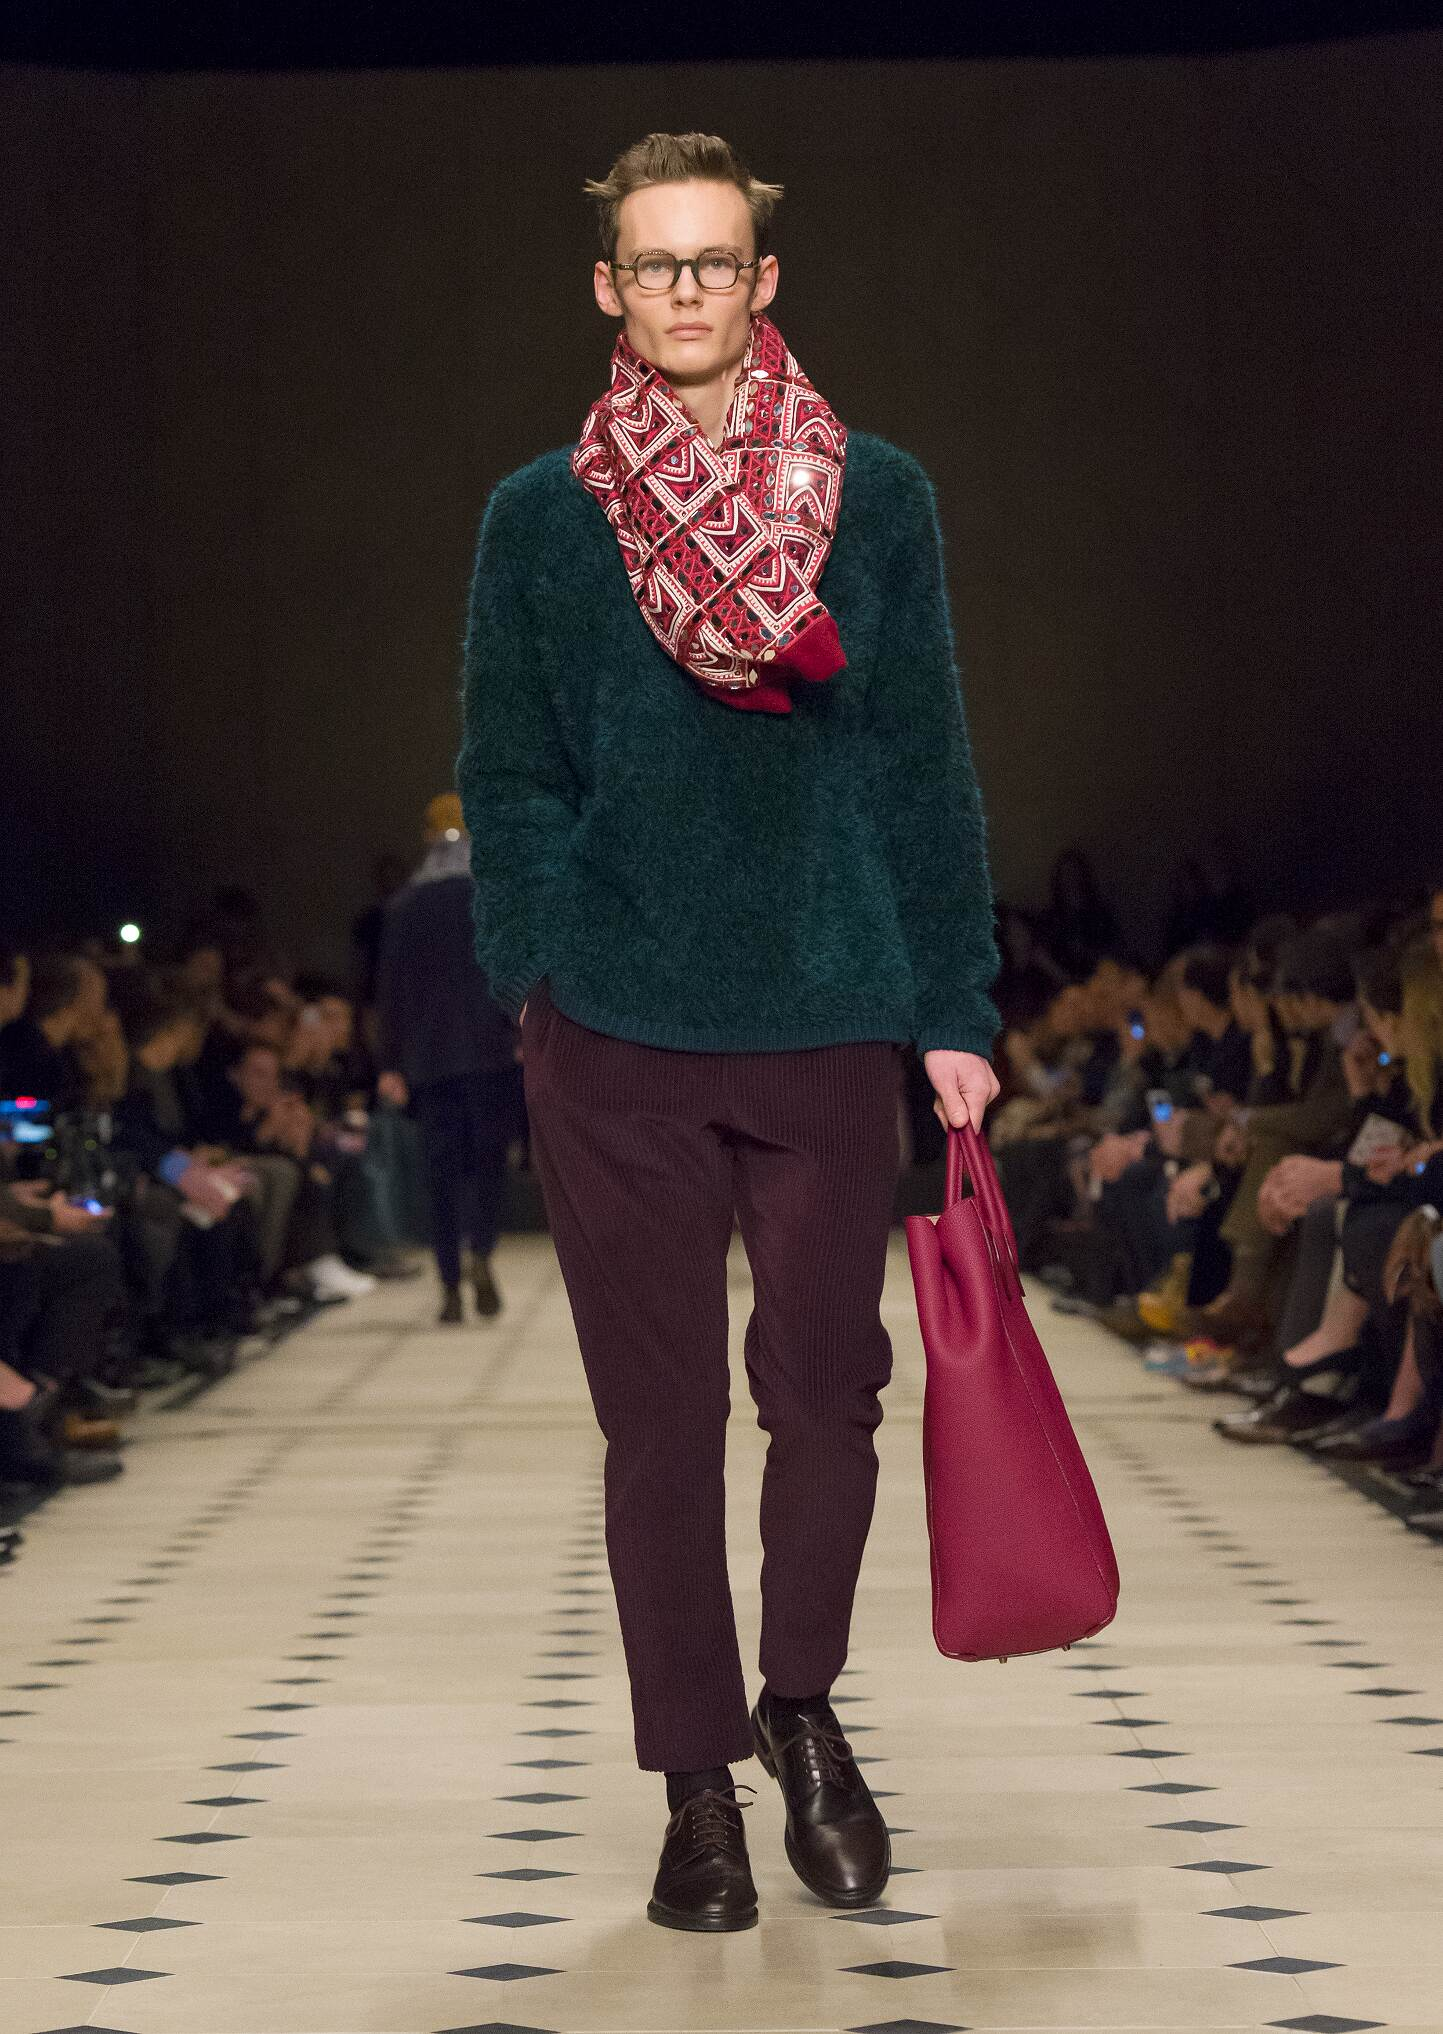 Burberry Fashion Show 2015 Men Catwalk Burberry Prorsum